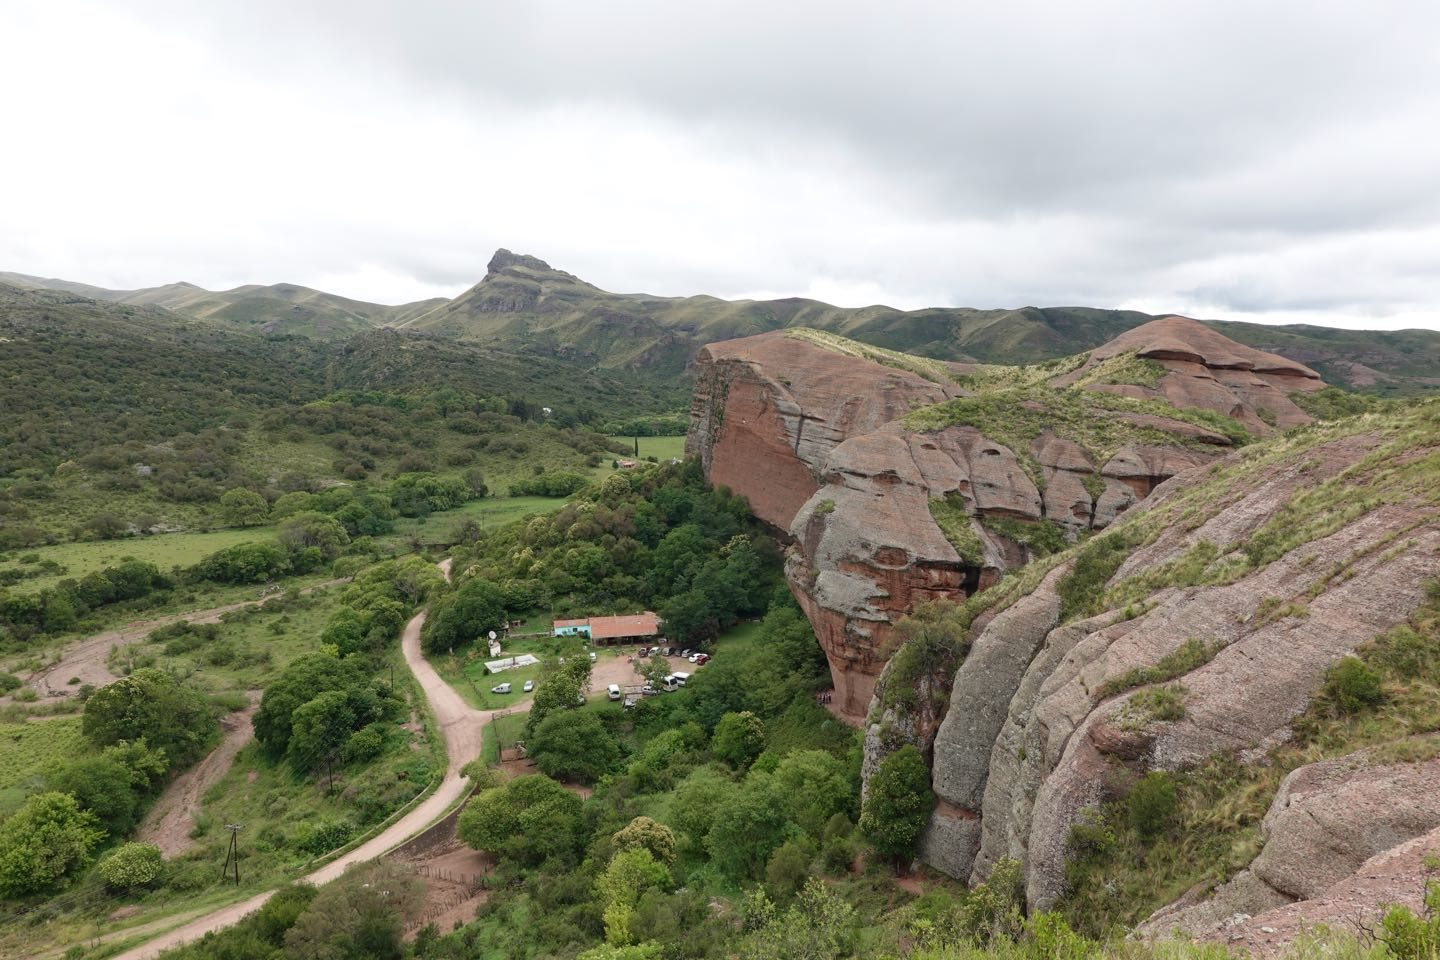 Panoramic view to the service area and parking lot of Grutas de Ongamira.